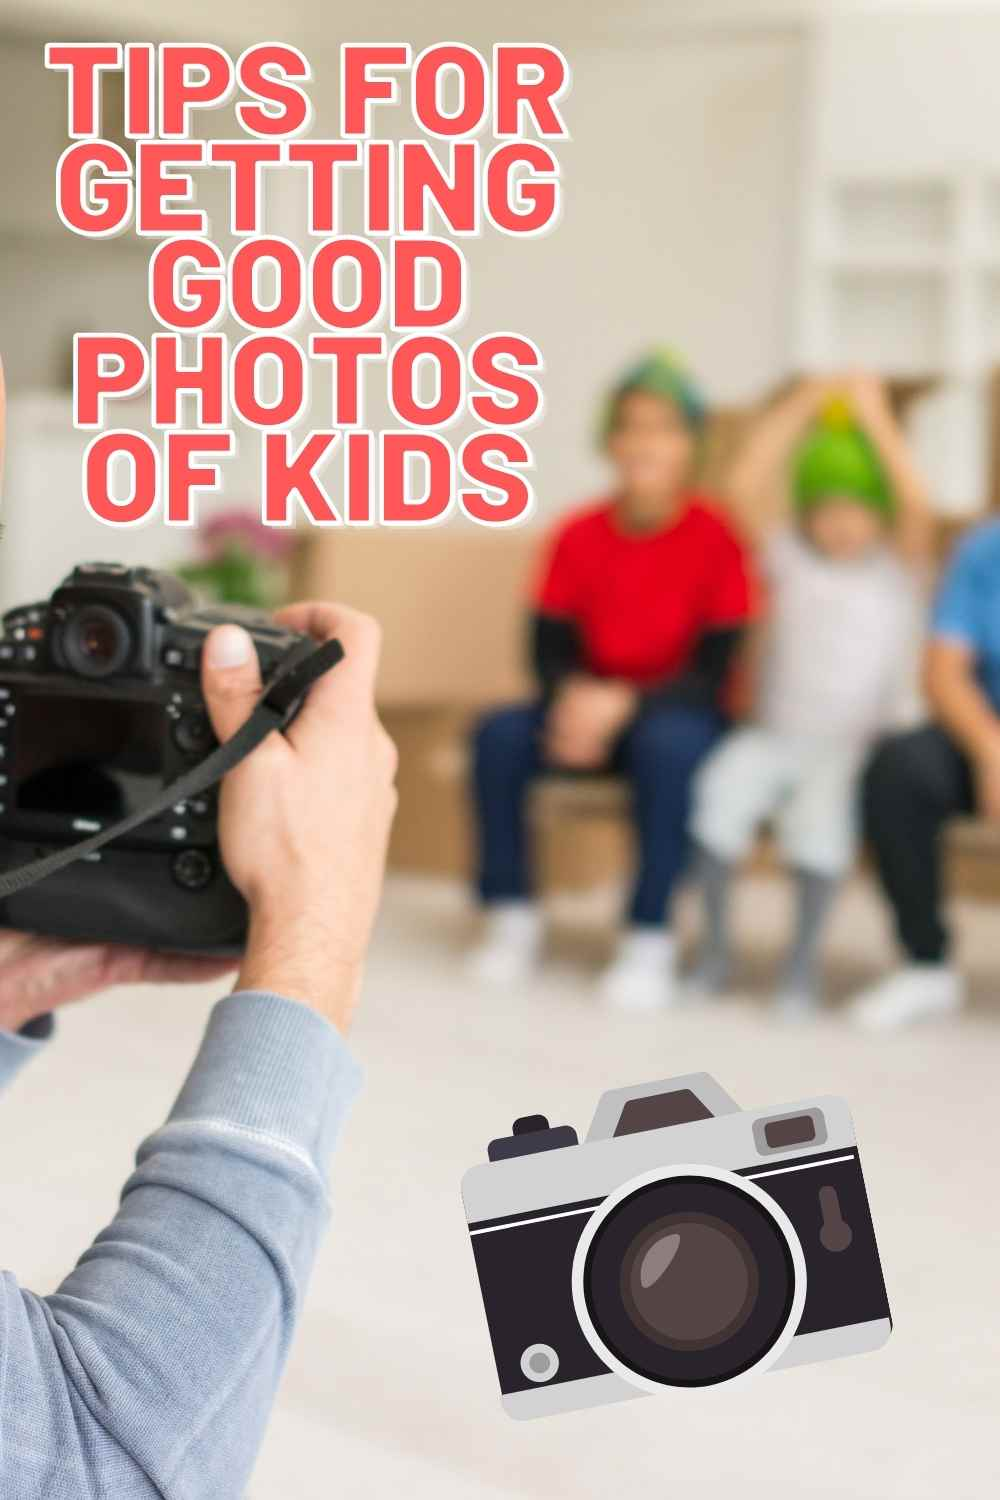 Tips for Getting Good Photos of Kids